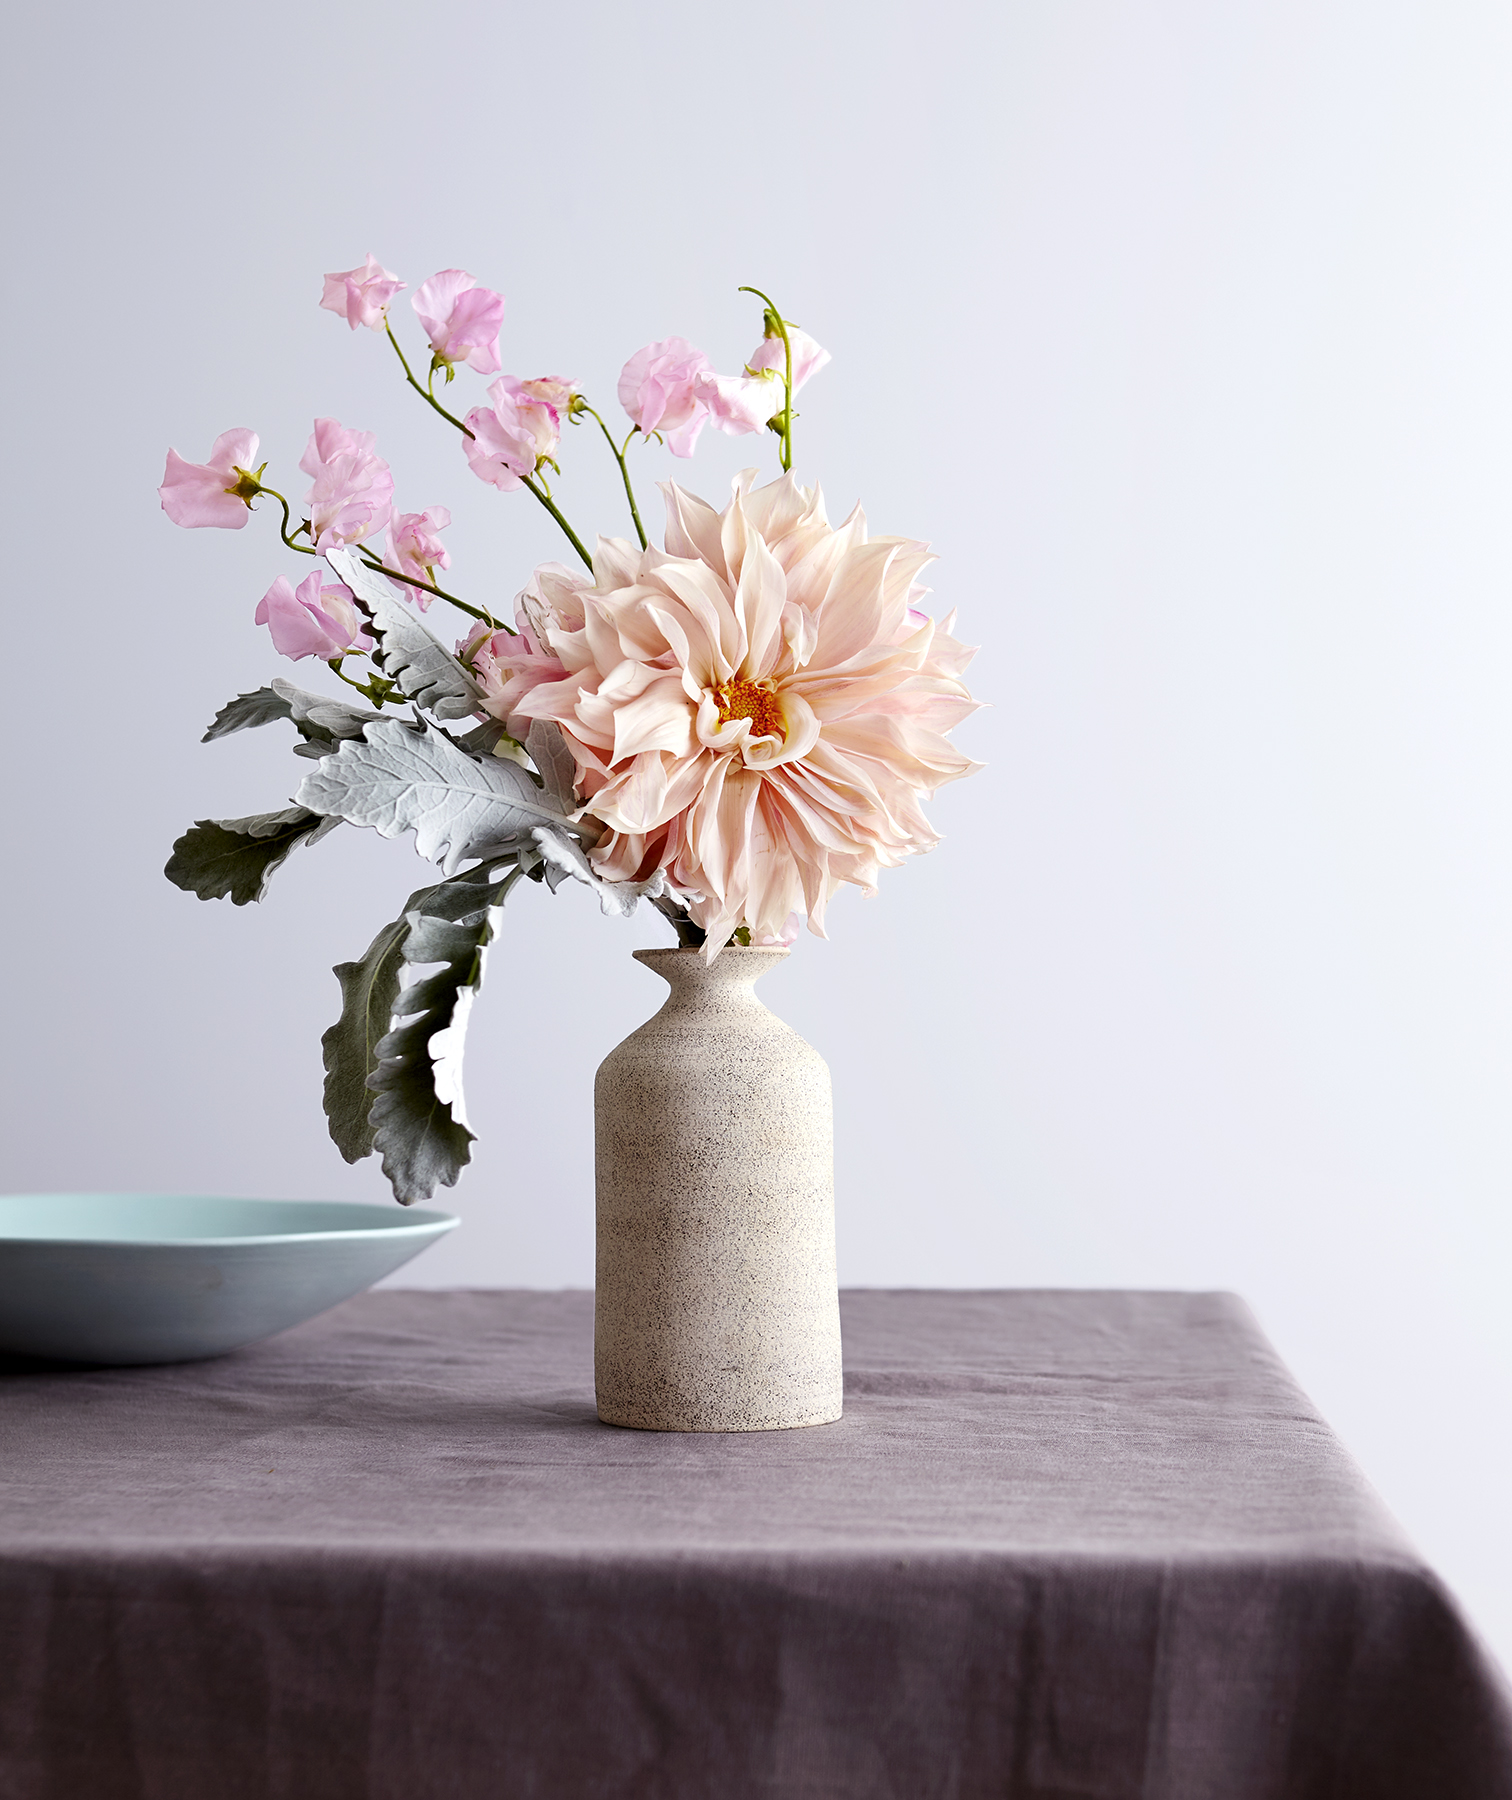 Vase with flowers, blue bowl on table